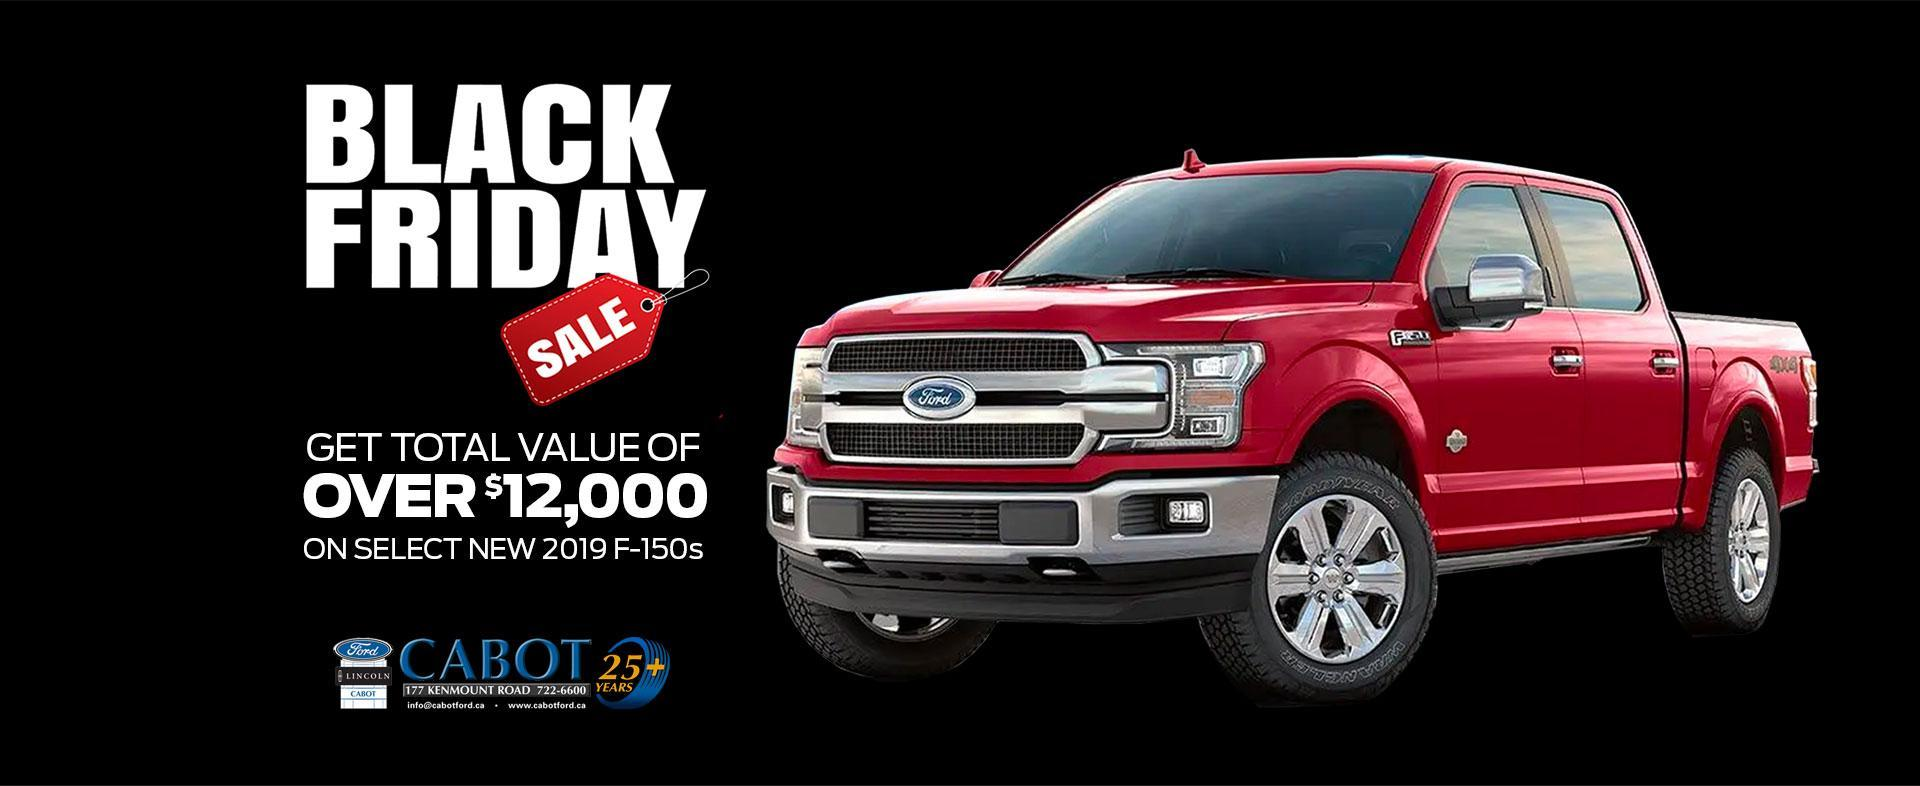 Black Friday savings! Get total value of over $12,000 on select new 2019 F-150s, only until Nov 27!